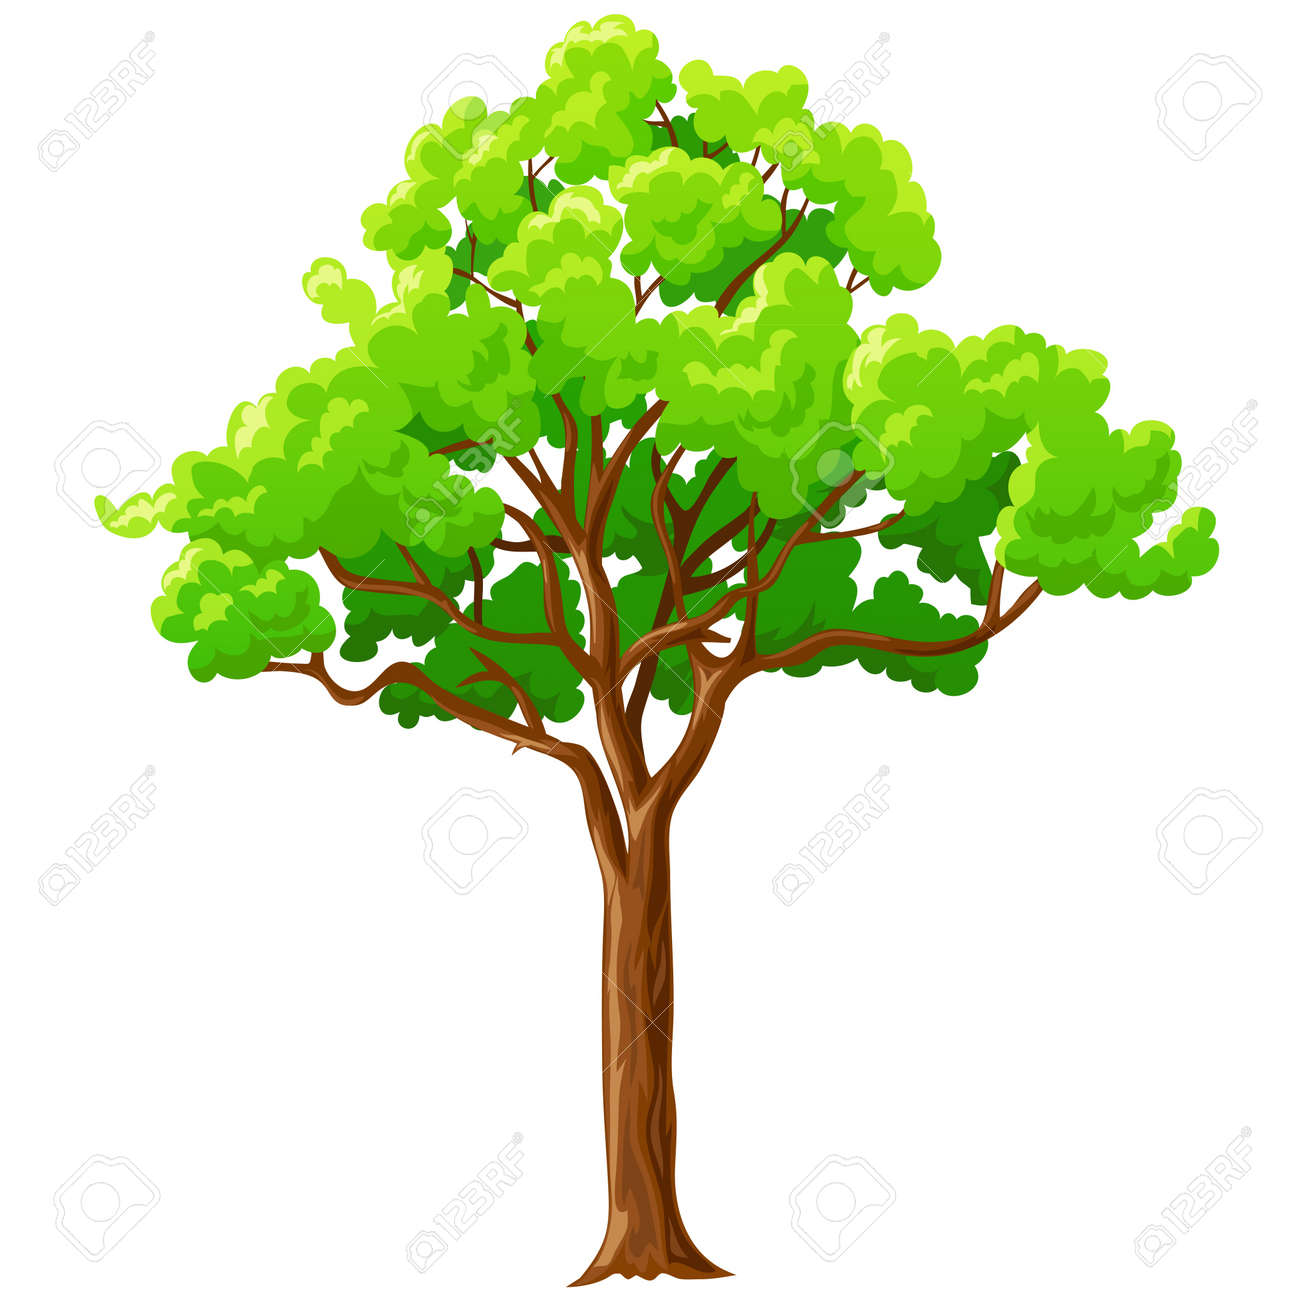 Cartoon big green tree with branches isolated on white background. Vector illustration. - 11536165